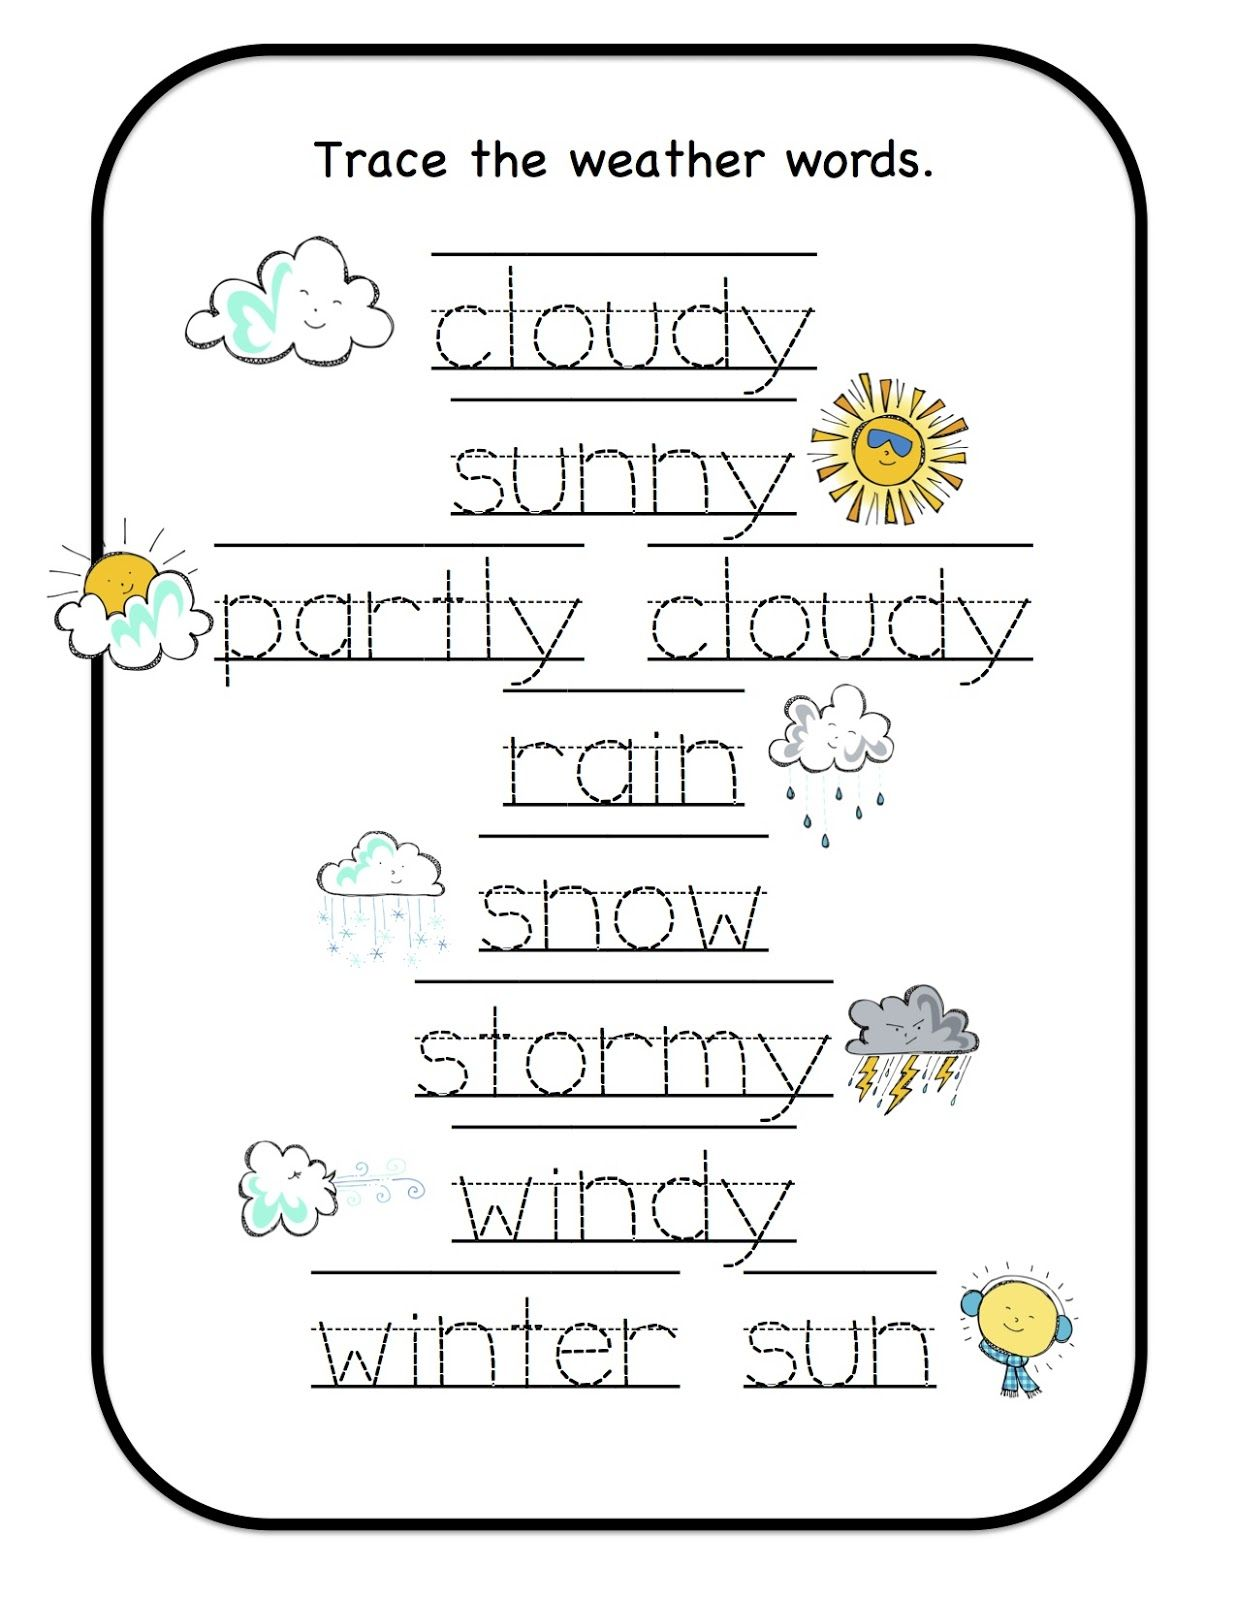 Uncategorized Weather Worksheets For Kindergarten weather worksheets for kids from all network unit find this pin and more on manualidaded by riobolamas preschool printables weather